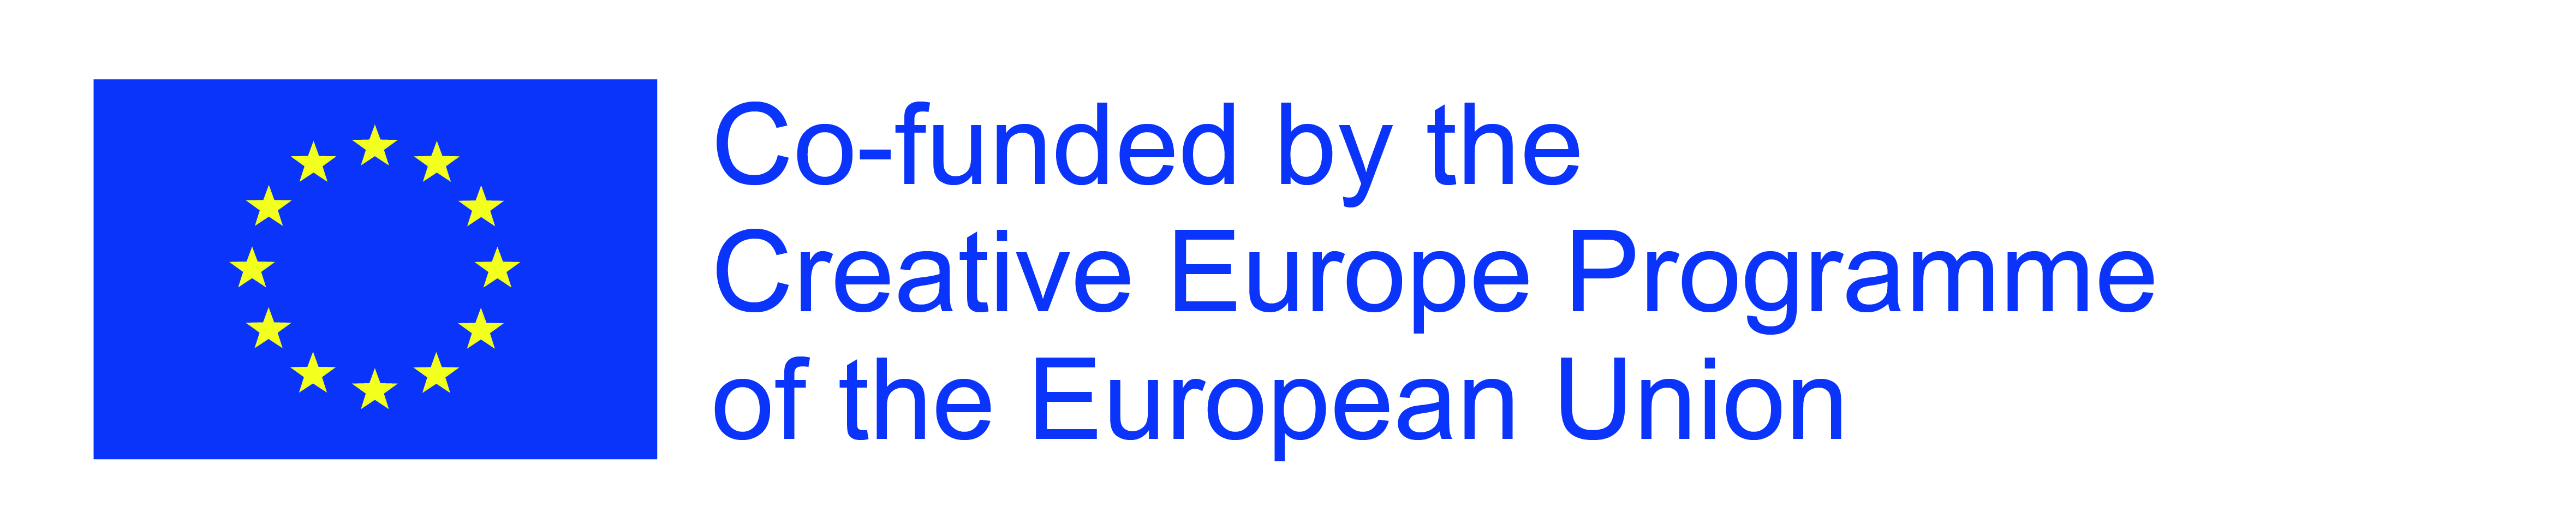 Logo: Co-funded by the Creative Europe programme of the European Union